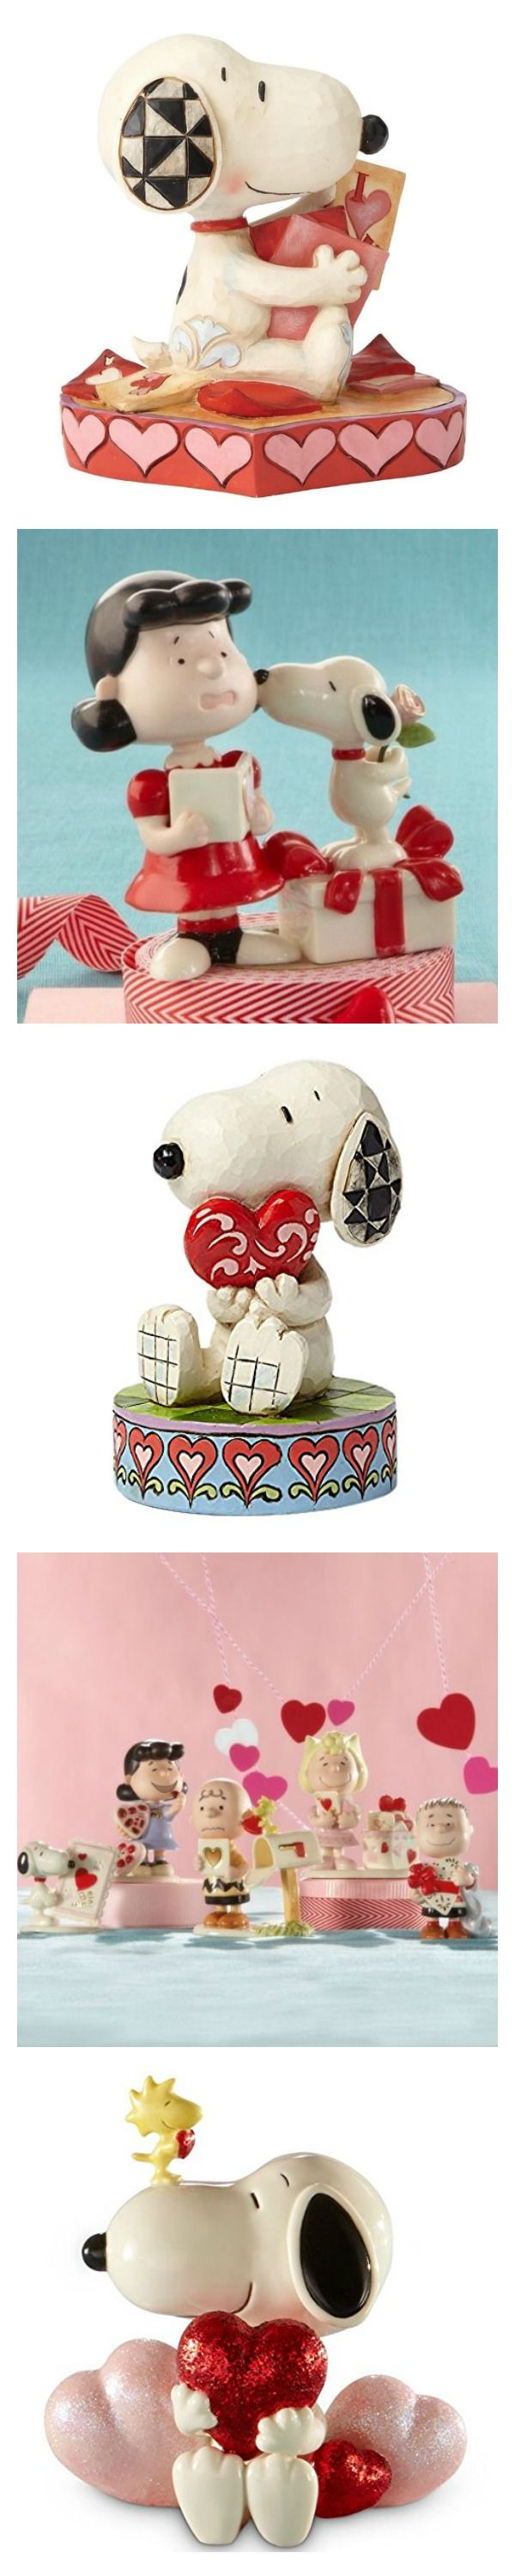 Plan a special day for your Sweet Babboo with Snoopy, Charlie Brown and Peanuts Valentine's Day gifts and decor from Amazon. Start shopping our curated list of ideas and help support CollectPeanuts.com.